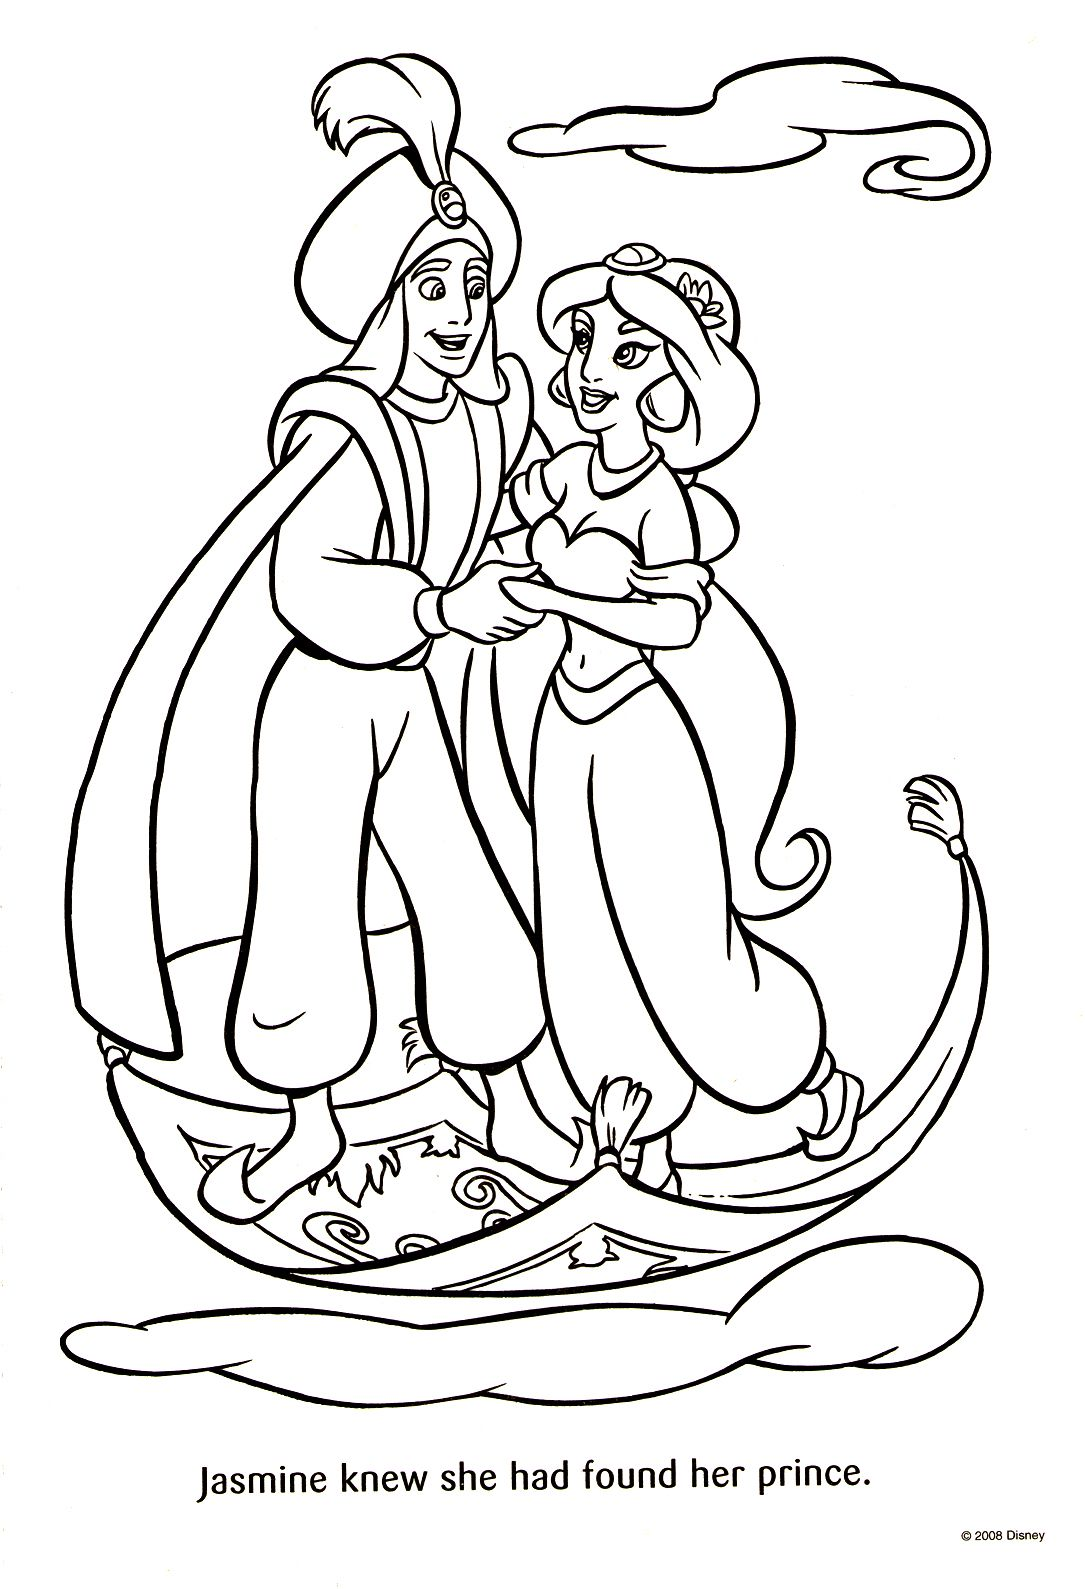 Aladdin coloring page | アラジン塗り絵 | Pinterest | Characters ...